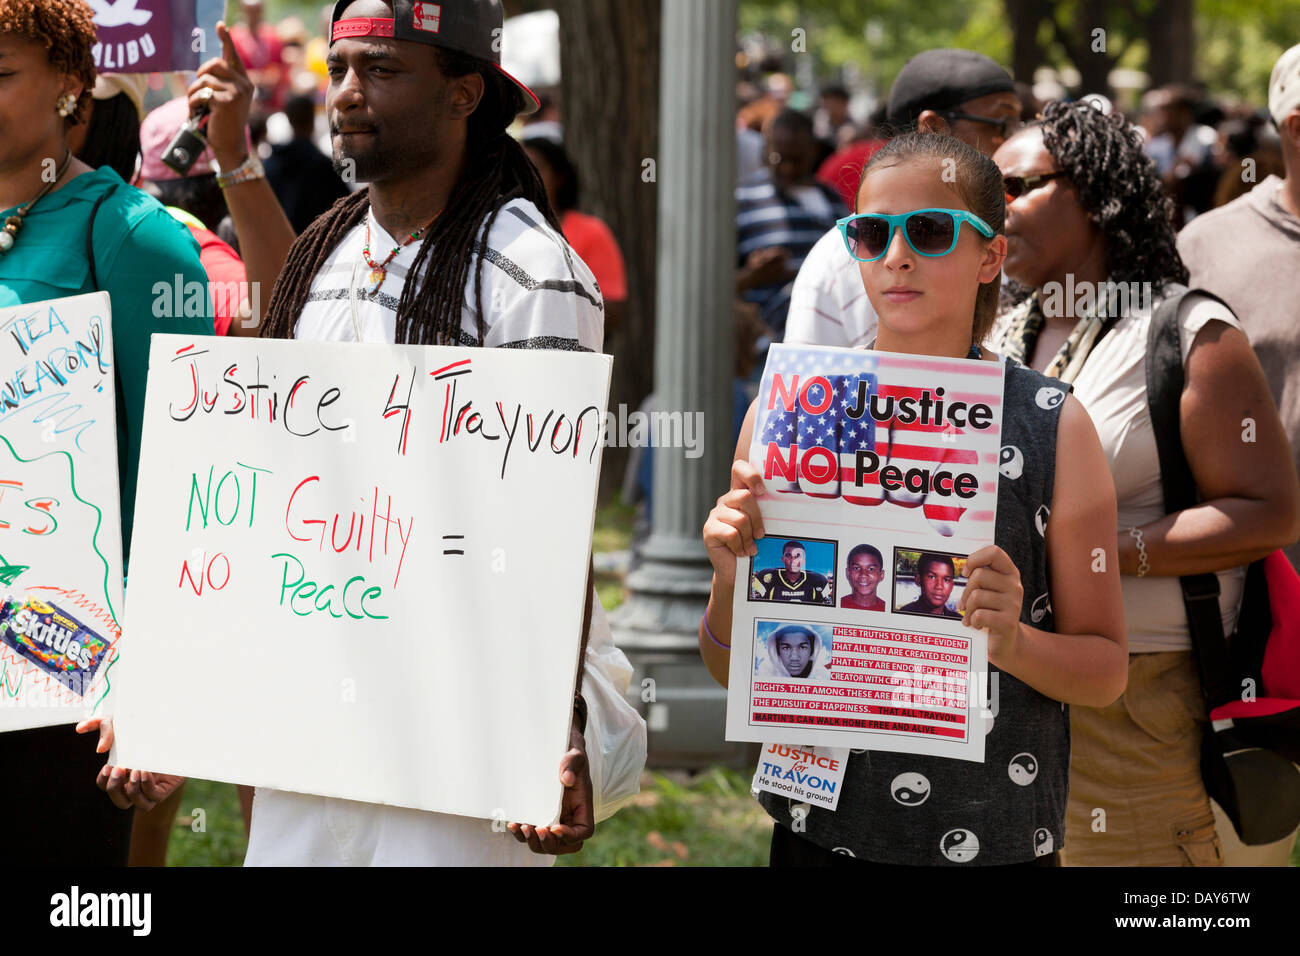 Justice for Trayvon Martin rally  - Washington, DC USA - Stock Image